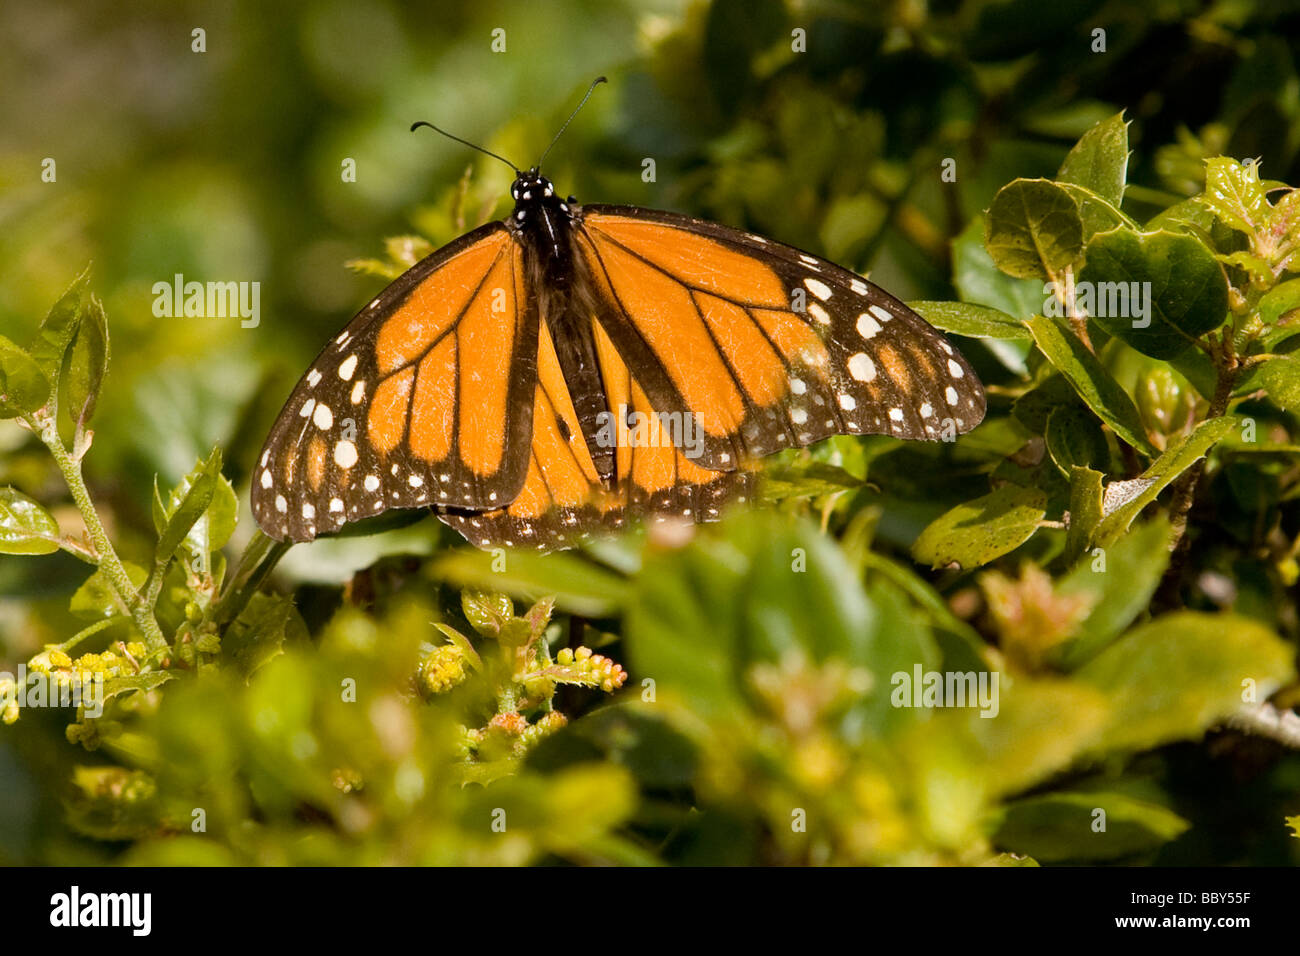 Monarch Butterfly - Pacific Grove, California. - Stock Image